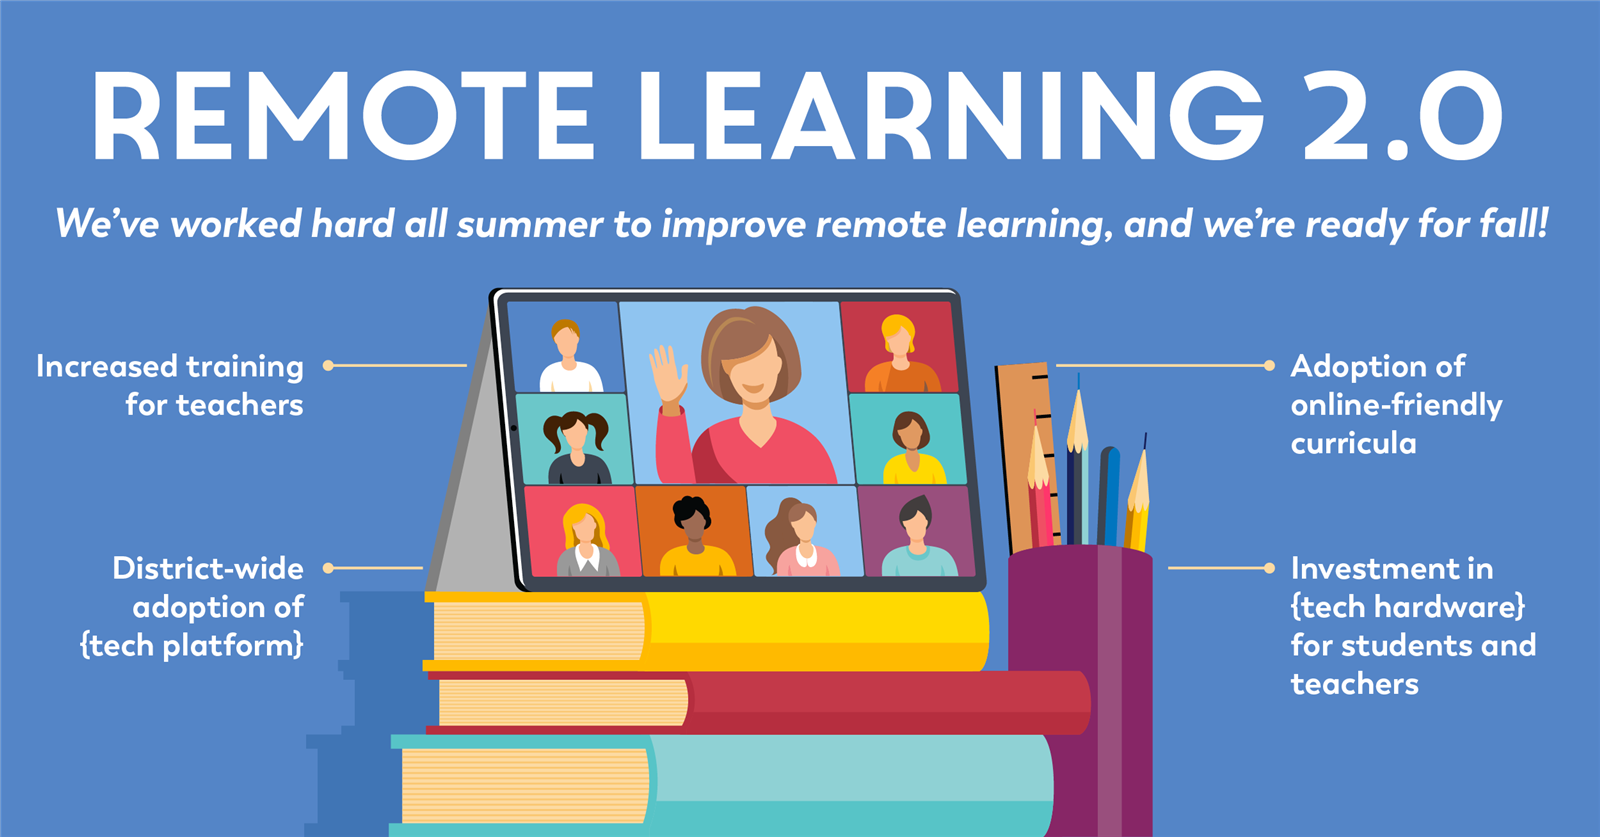 Remote Learning 2.0